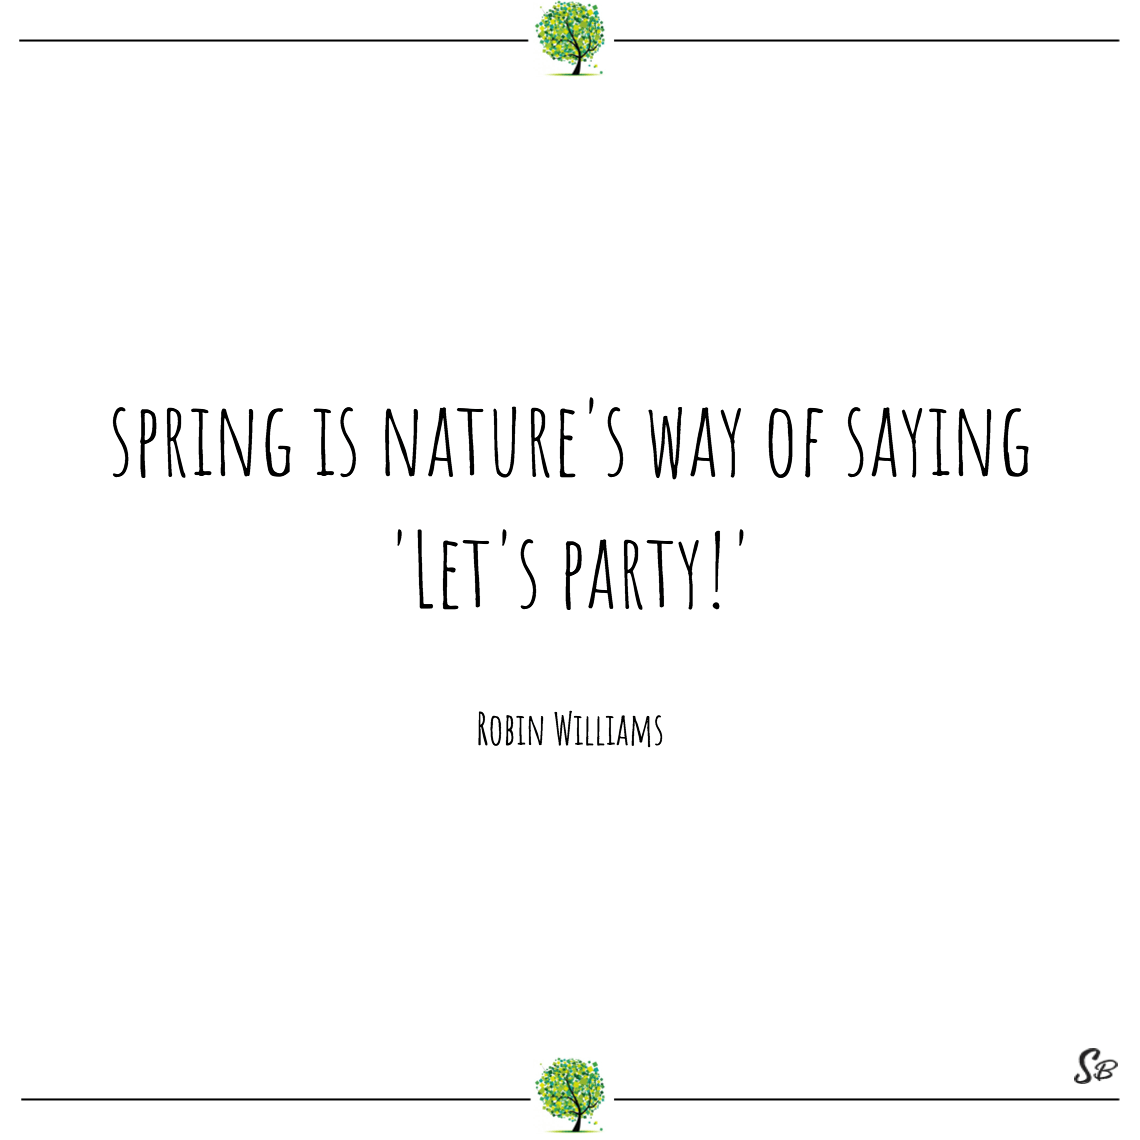 Spring is nature's way of saying 'let's party!' robin williams